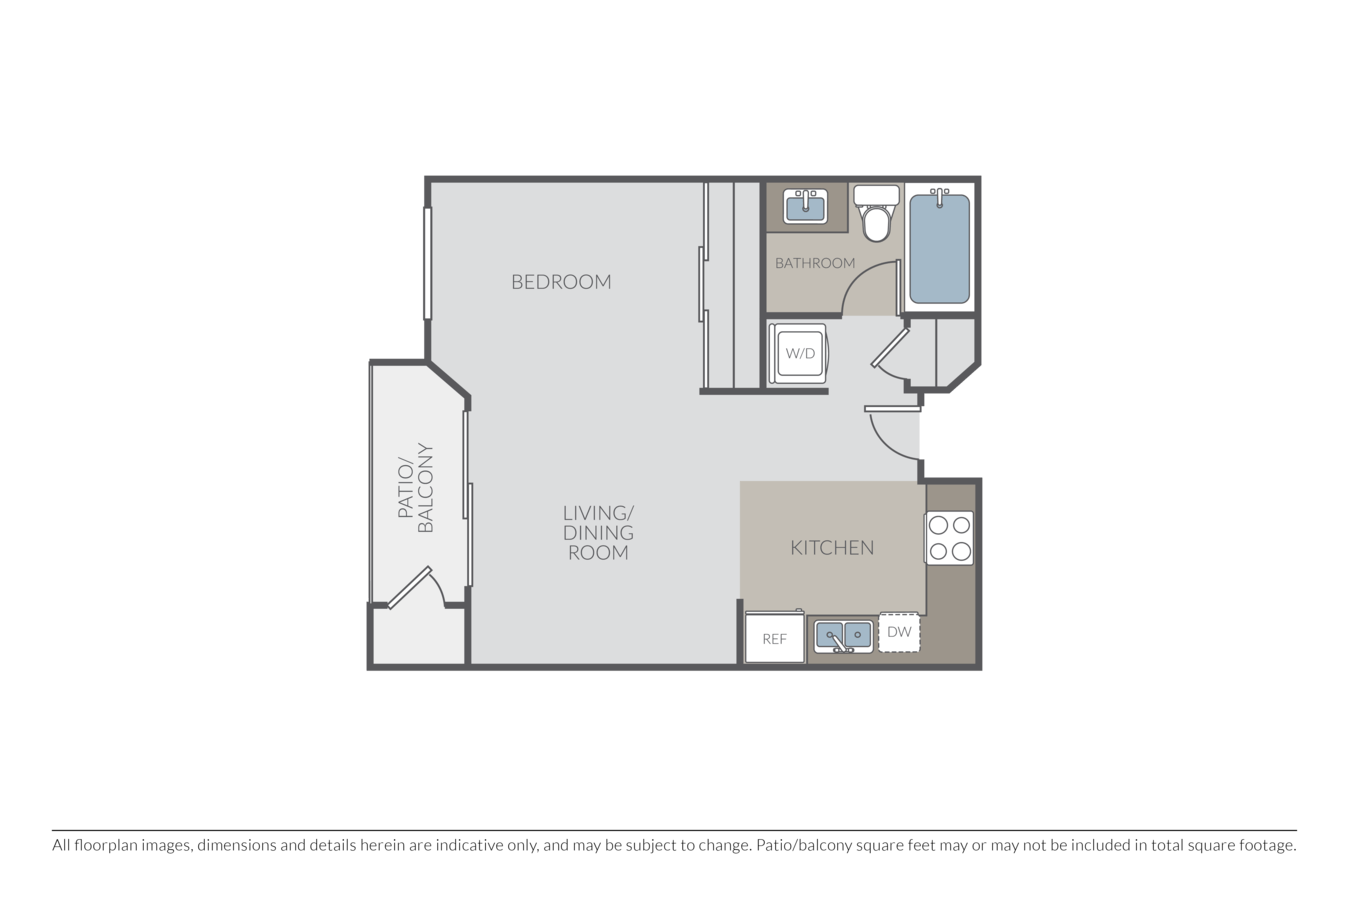 Studio 1 Bathroom Apartment for rent at Marbrisa in Long Beach, CA